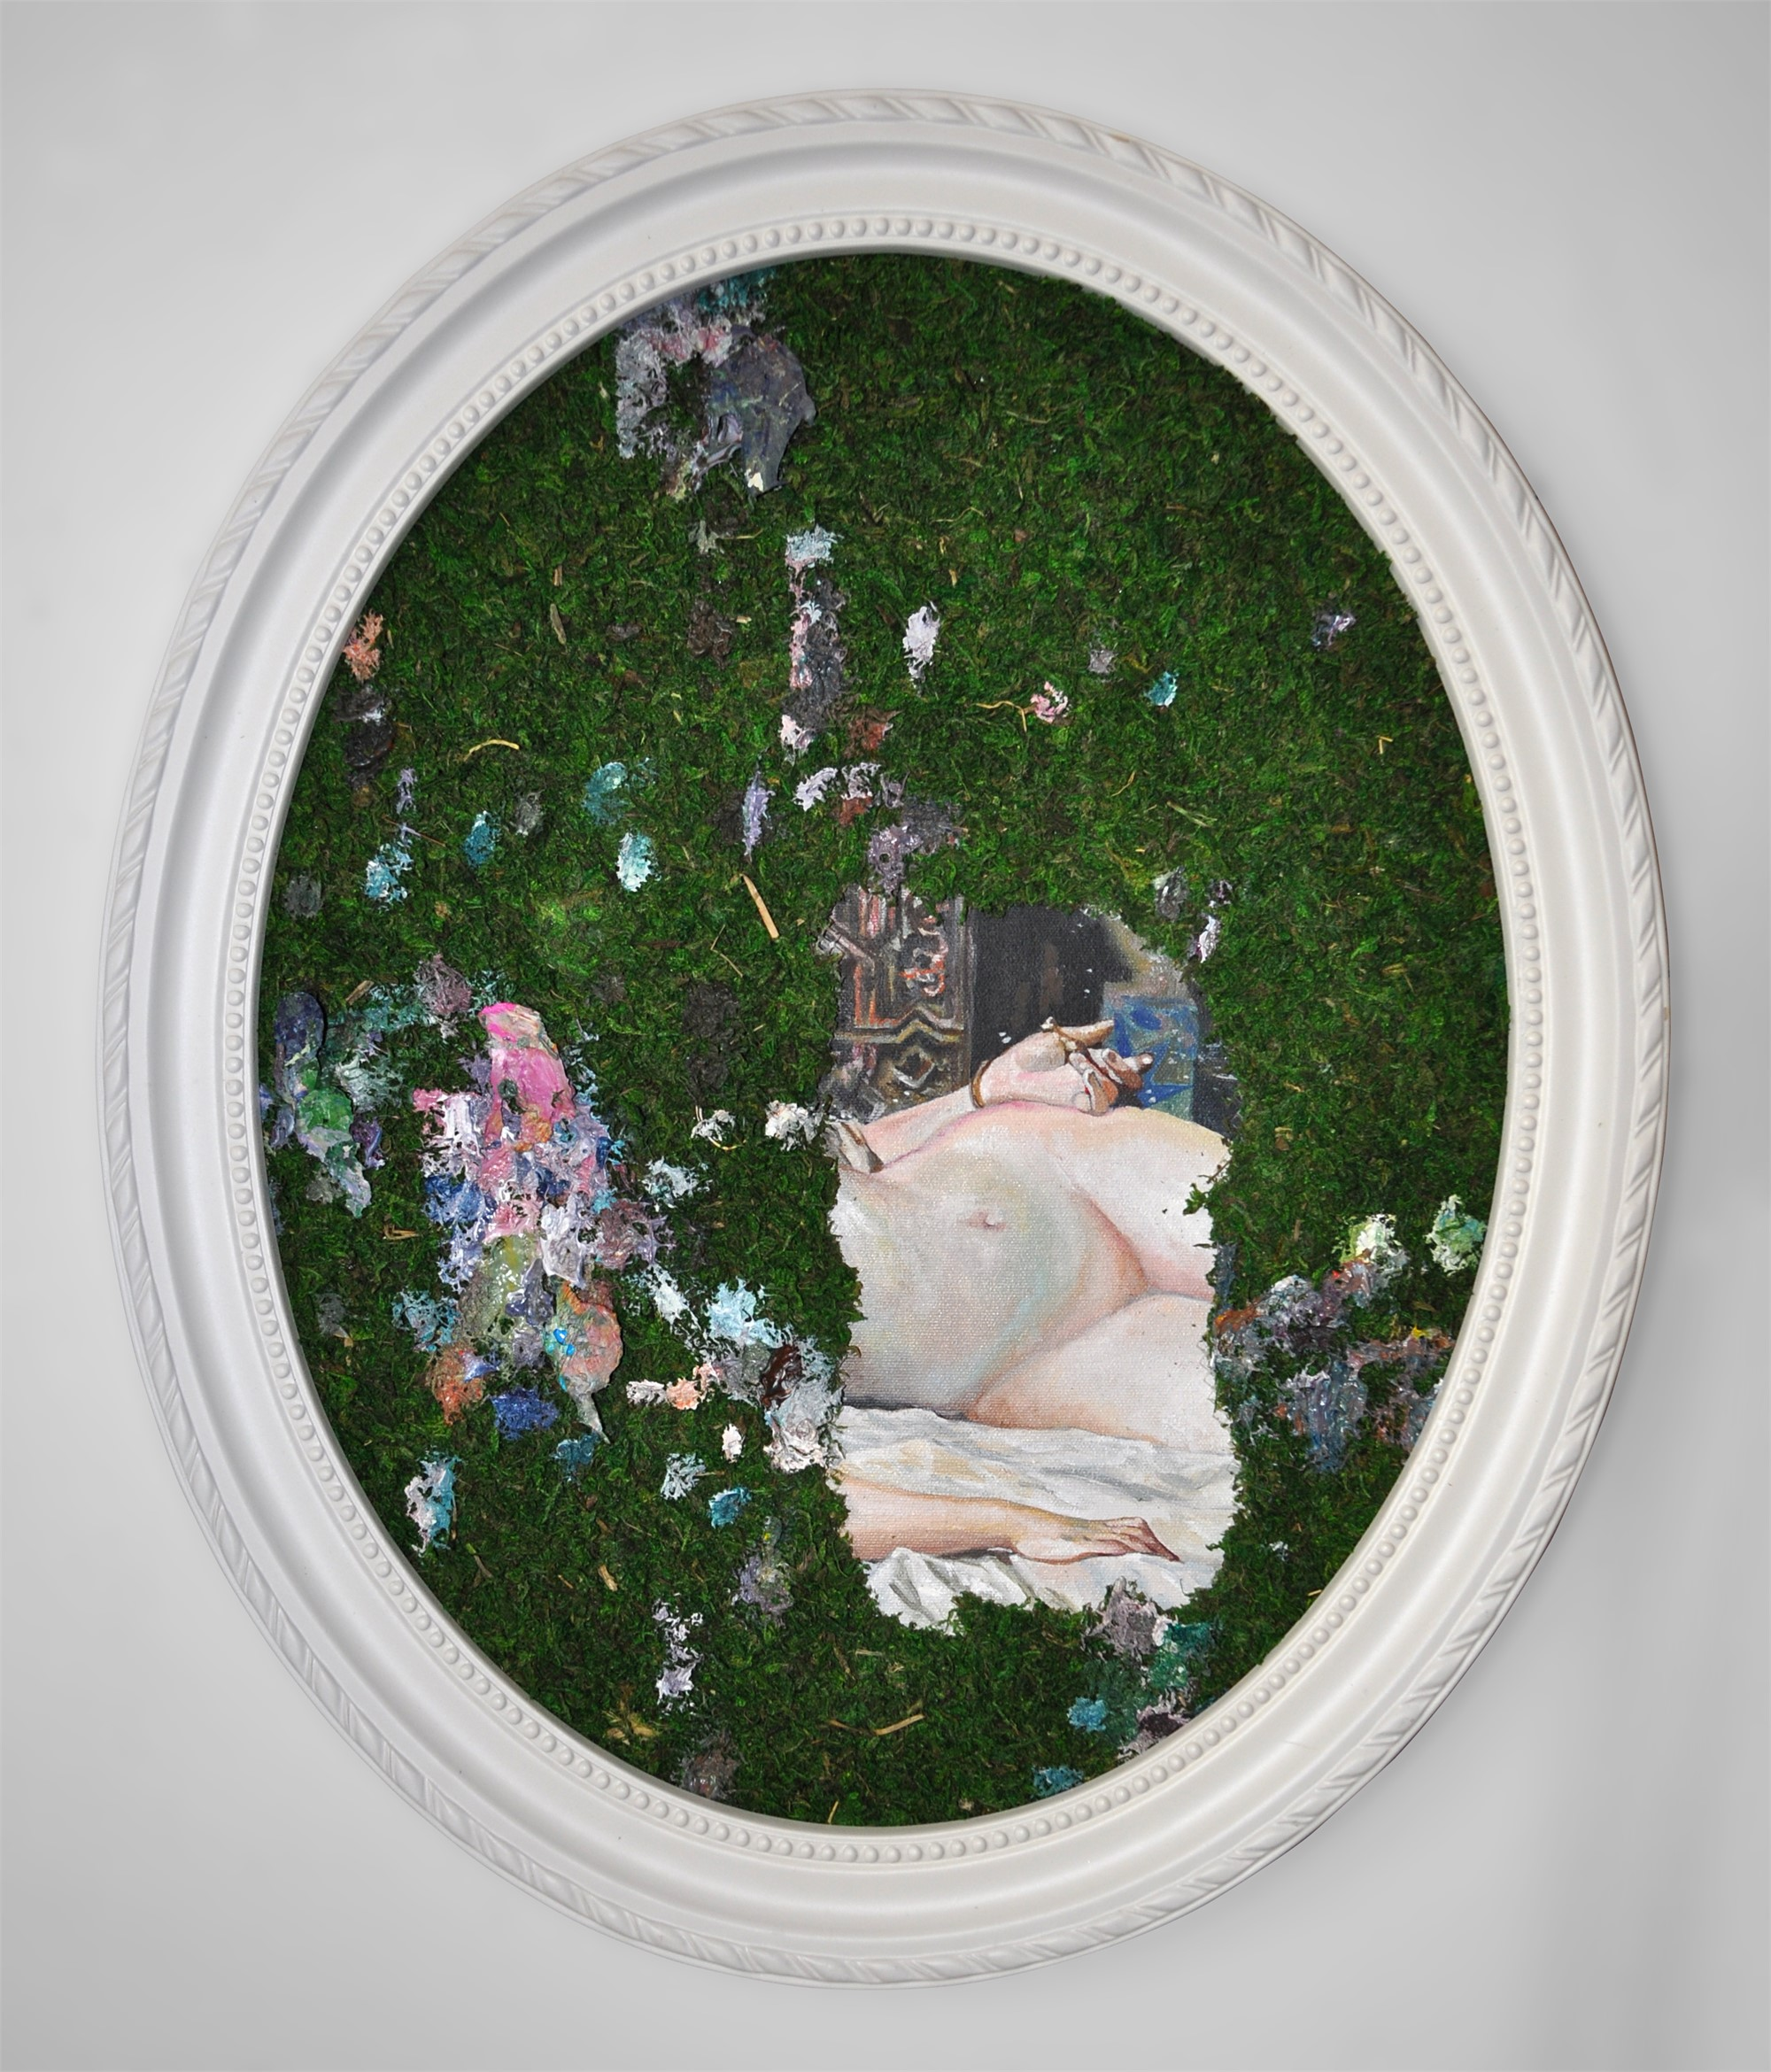 Manly Moss 2, Odalisque After Fortuny by Melissa Furness